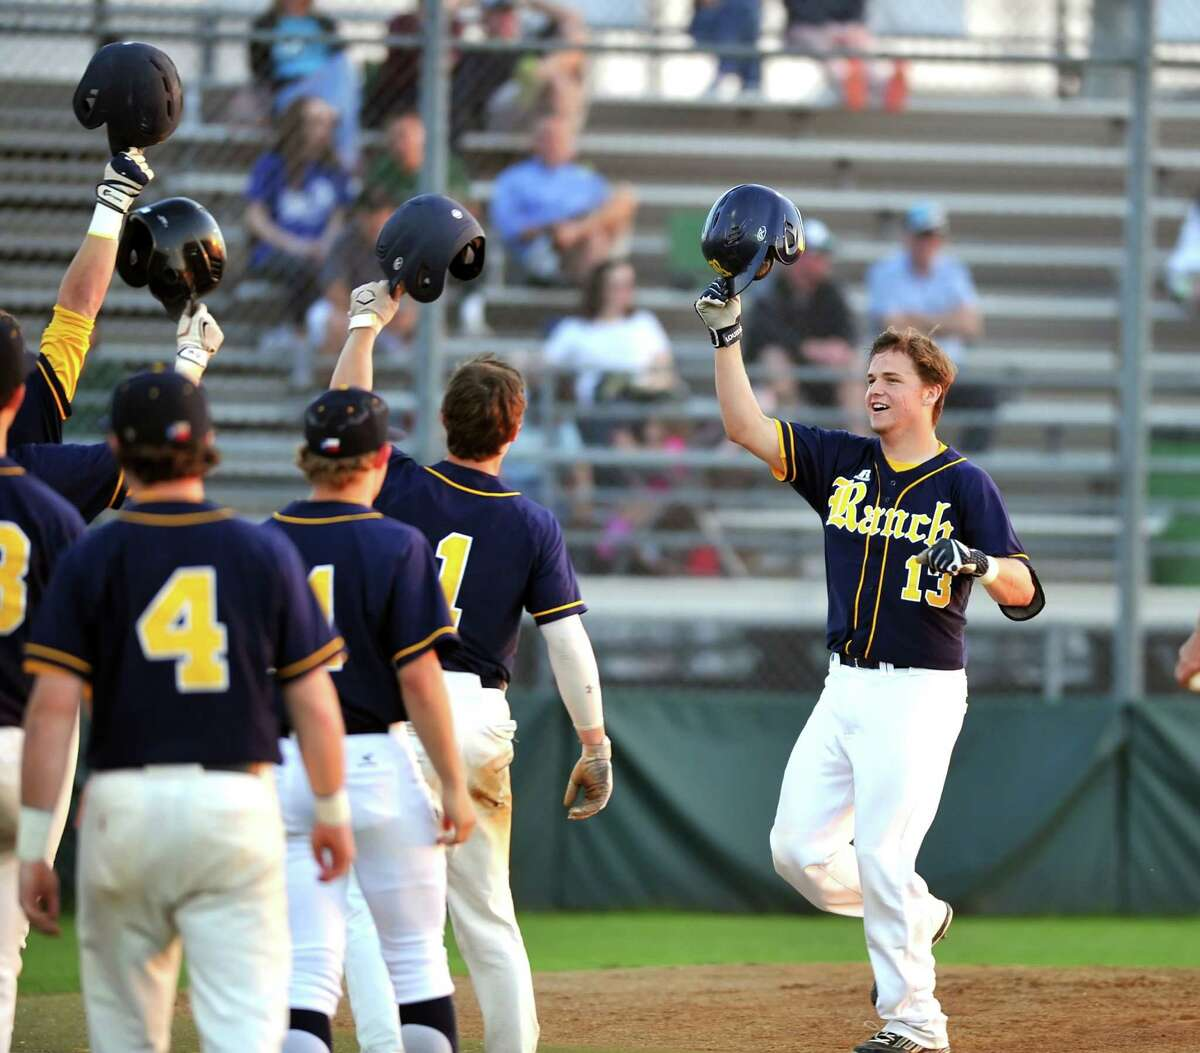 Cy Ranch traveled to Cy Falls for a UIL District 17-6A baseball game. Right, Cy Ranch's Marshall Skinner (13) is met at home plate after hitting a two run home run.